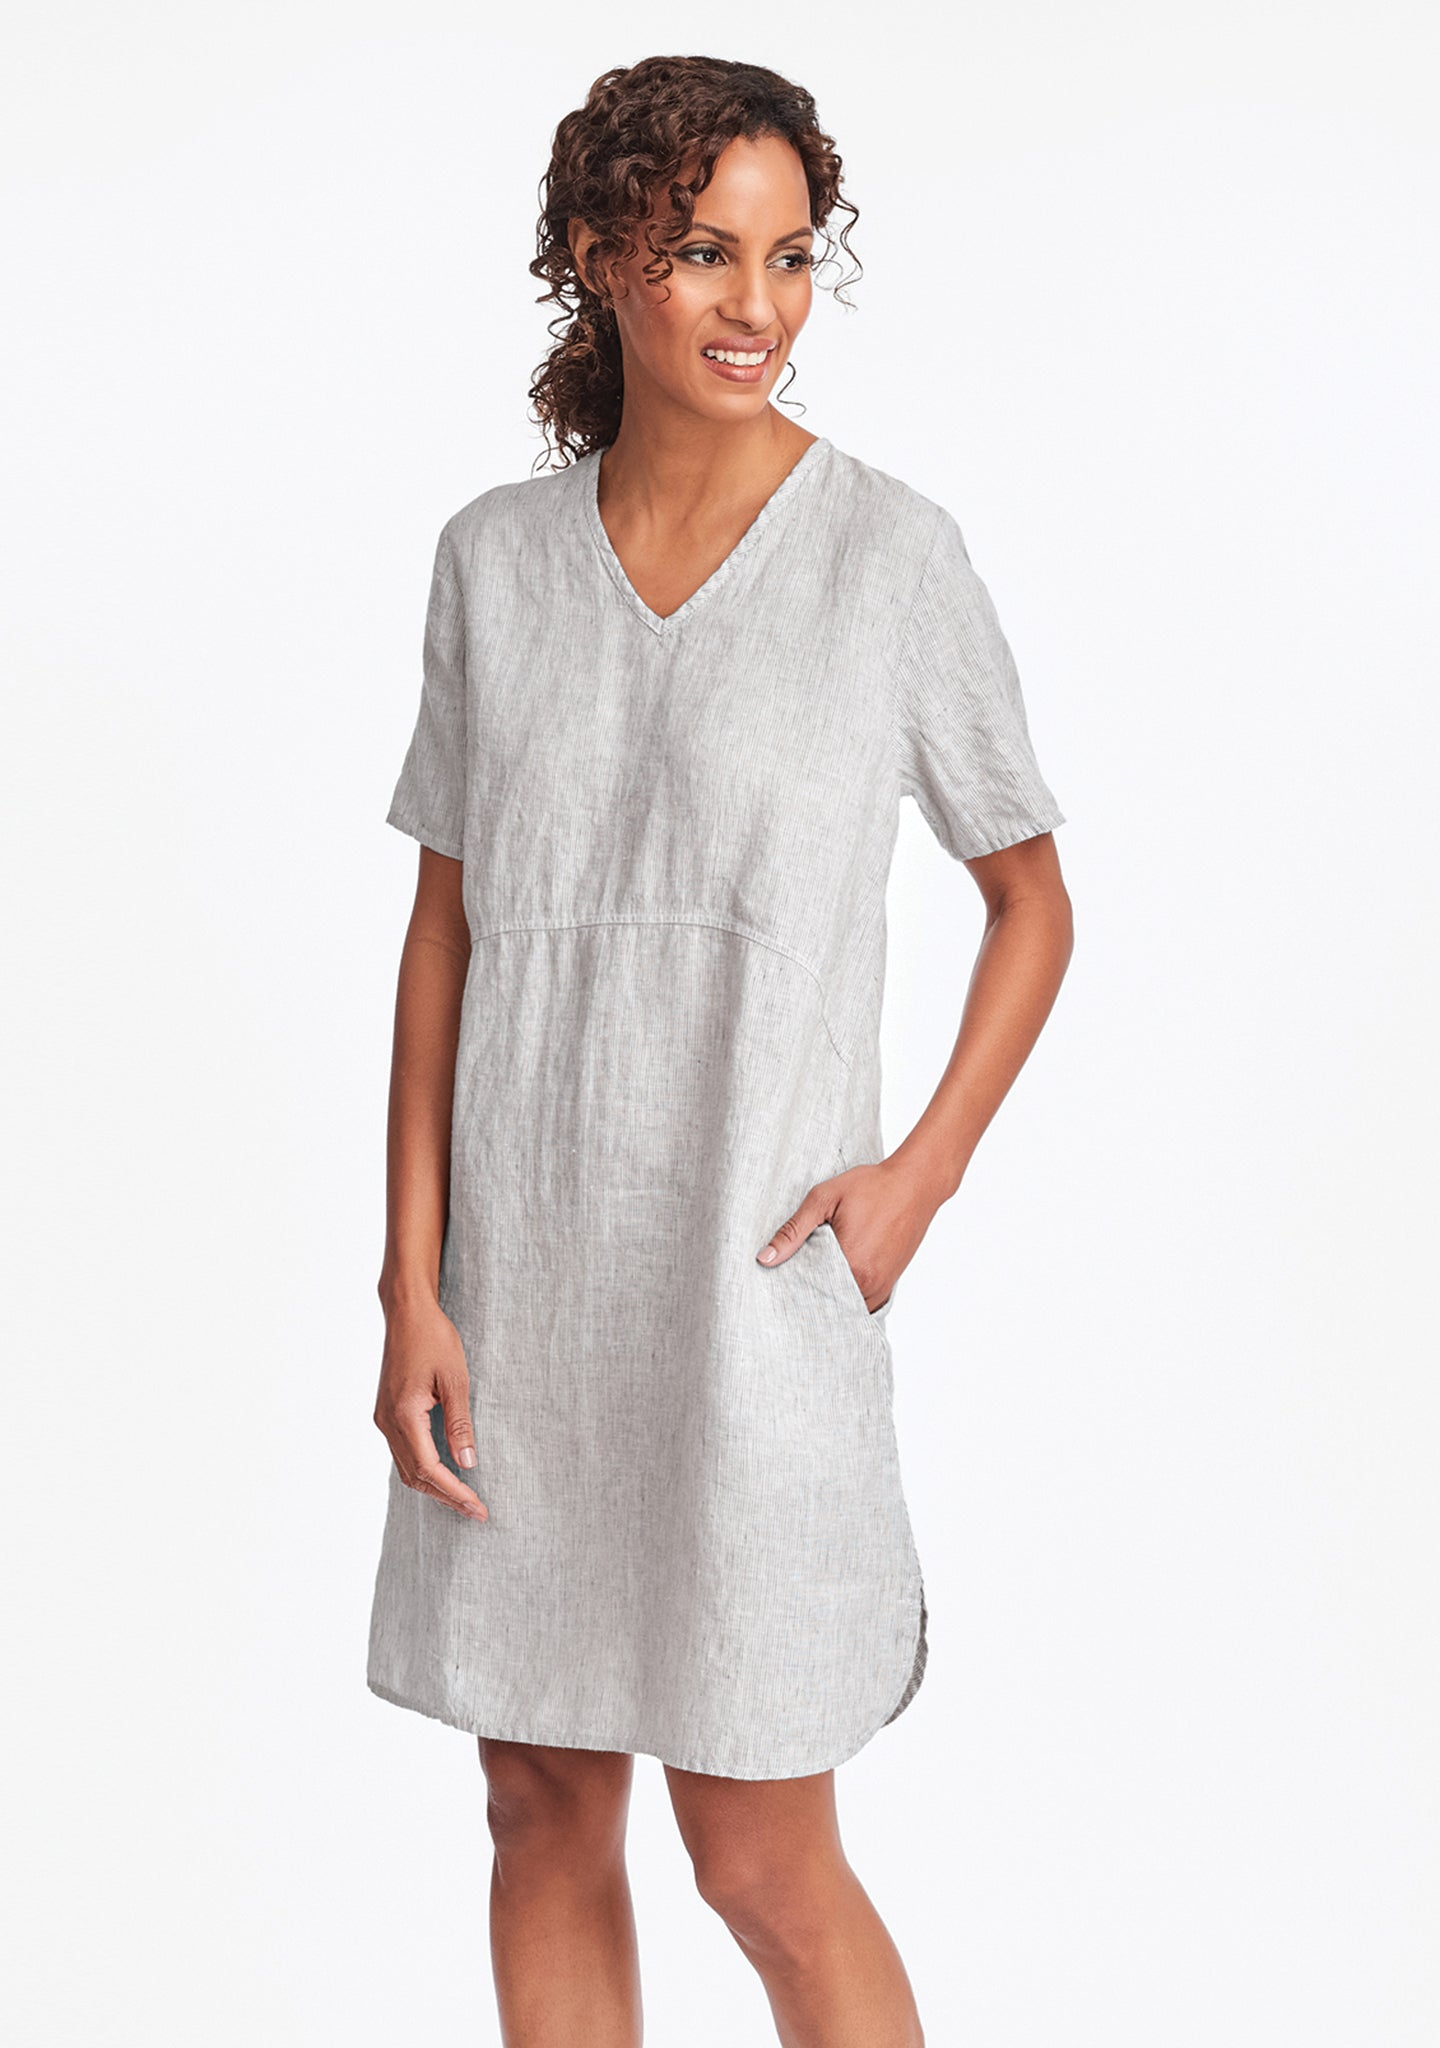 tee shirt dress linen summer dress grey